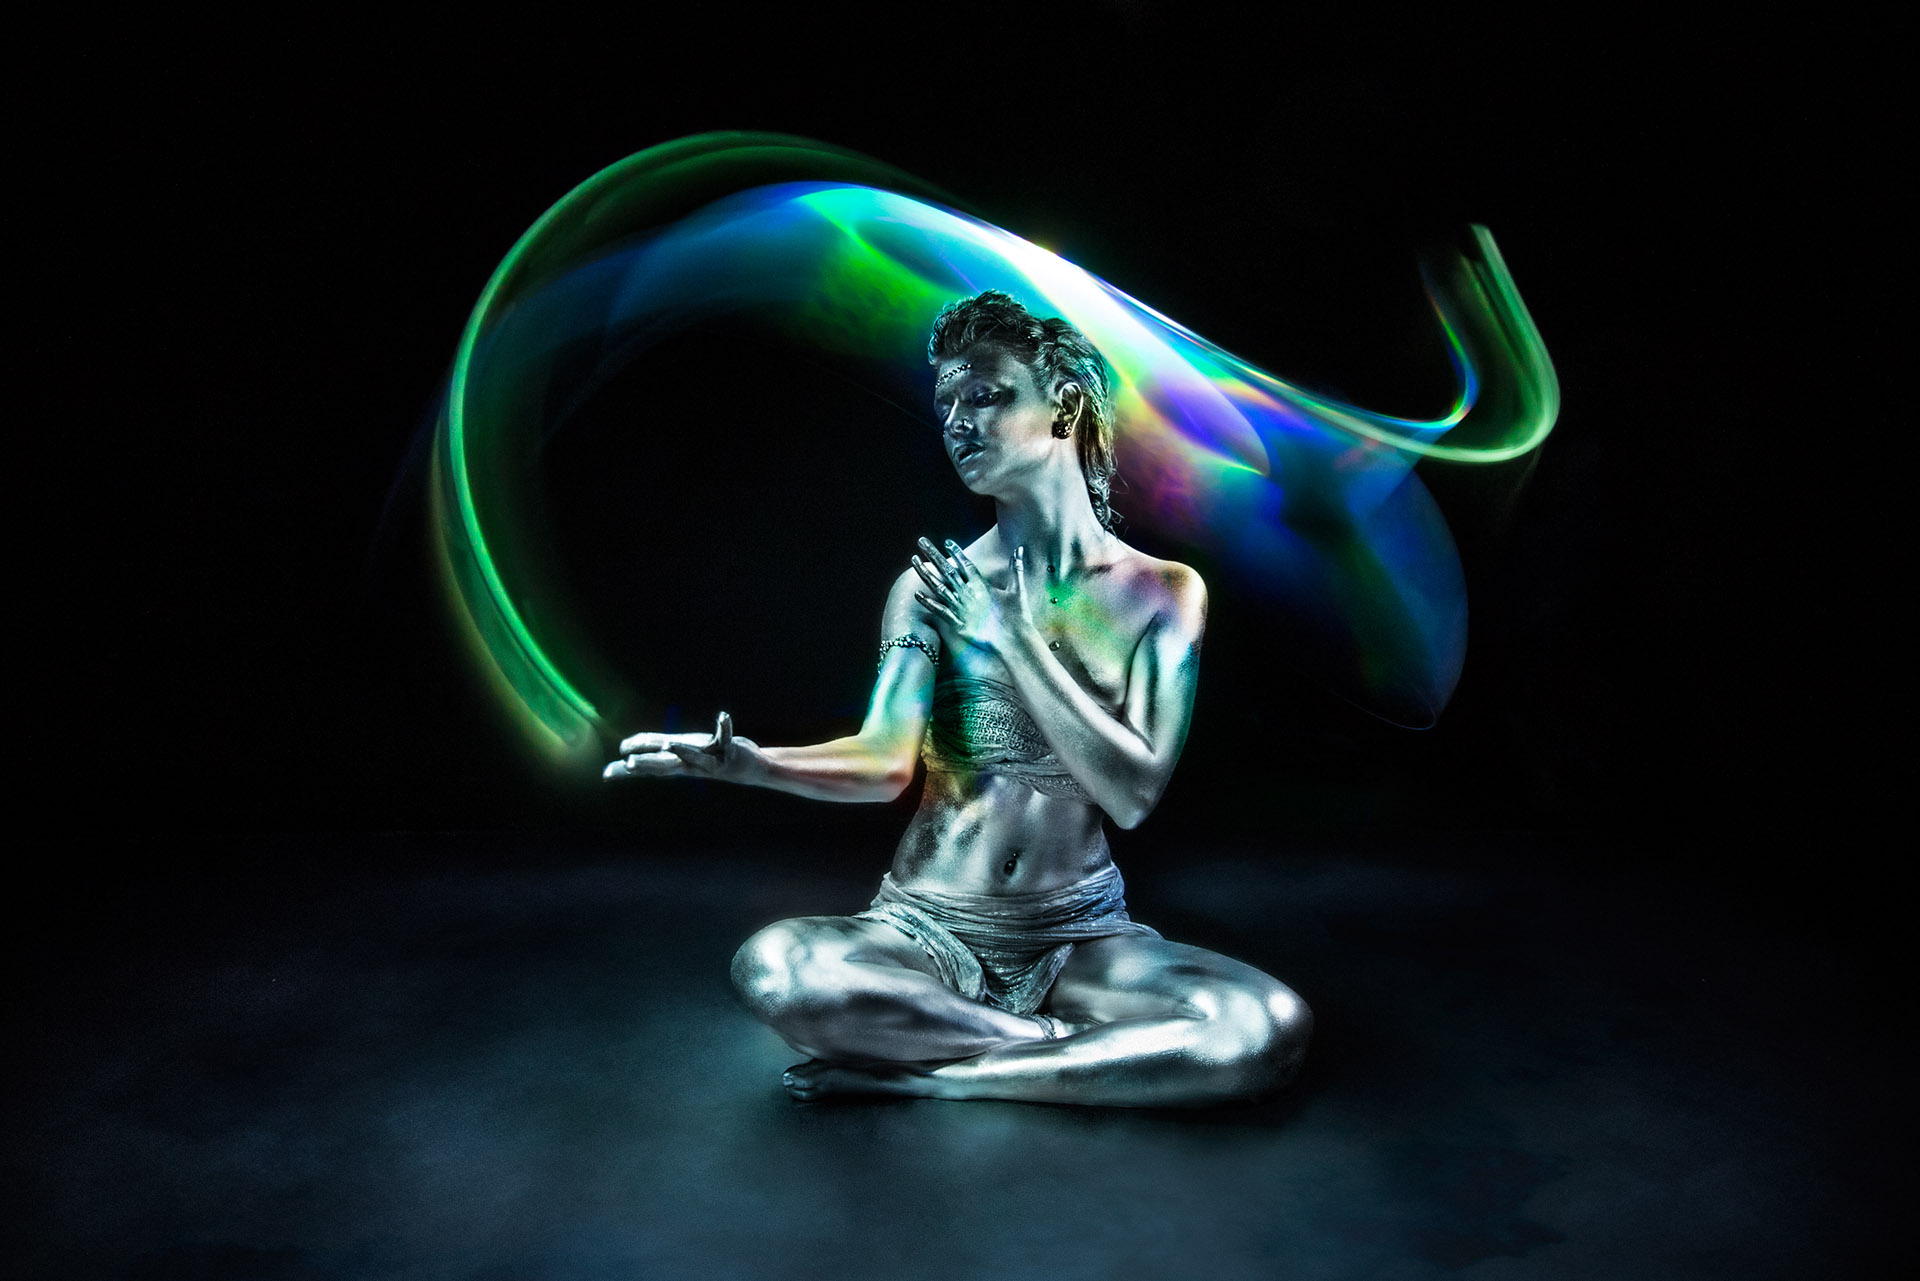 light-painting-eric-pare-fotolia-montreal-audrey-genest-original-solar-wind-1920-jpg-odkd